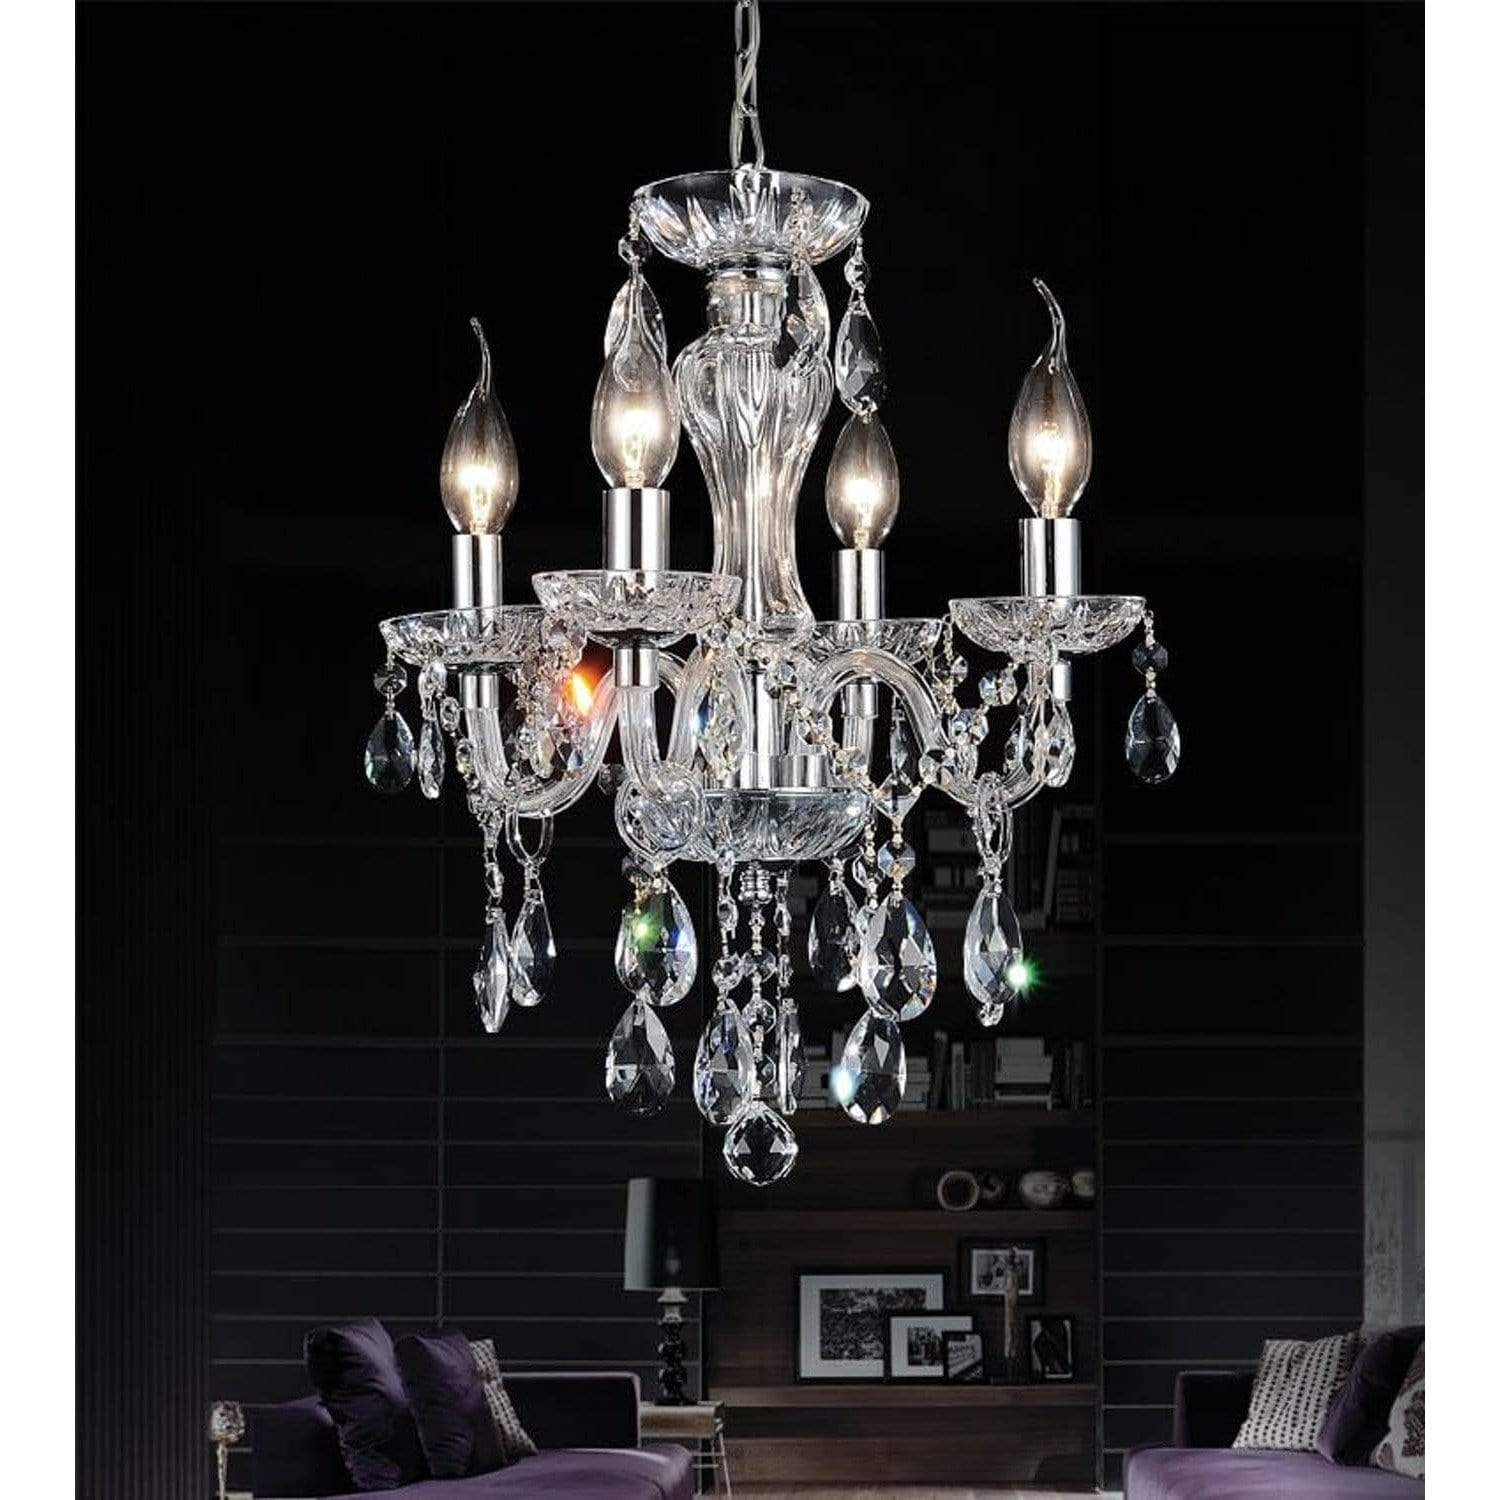 CWI Lighting Chandeliers Chrome / K9 Clear Princeton 4 Light Up Chandelier with Chrome finish by CWI Lighting 8273P14C-4 (clear)